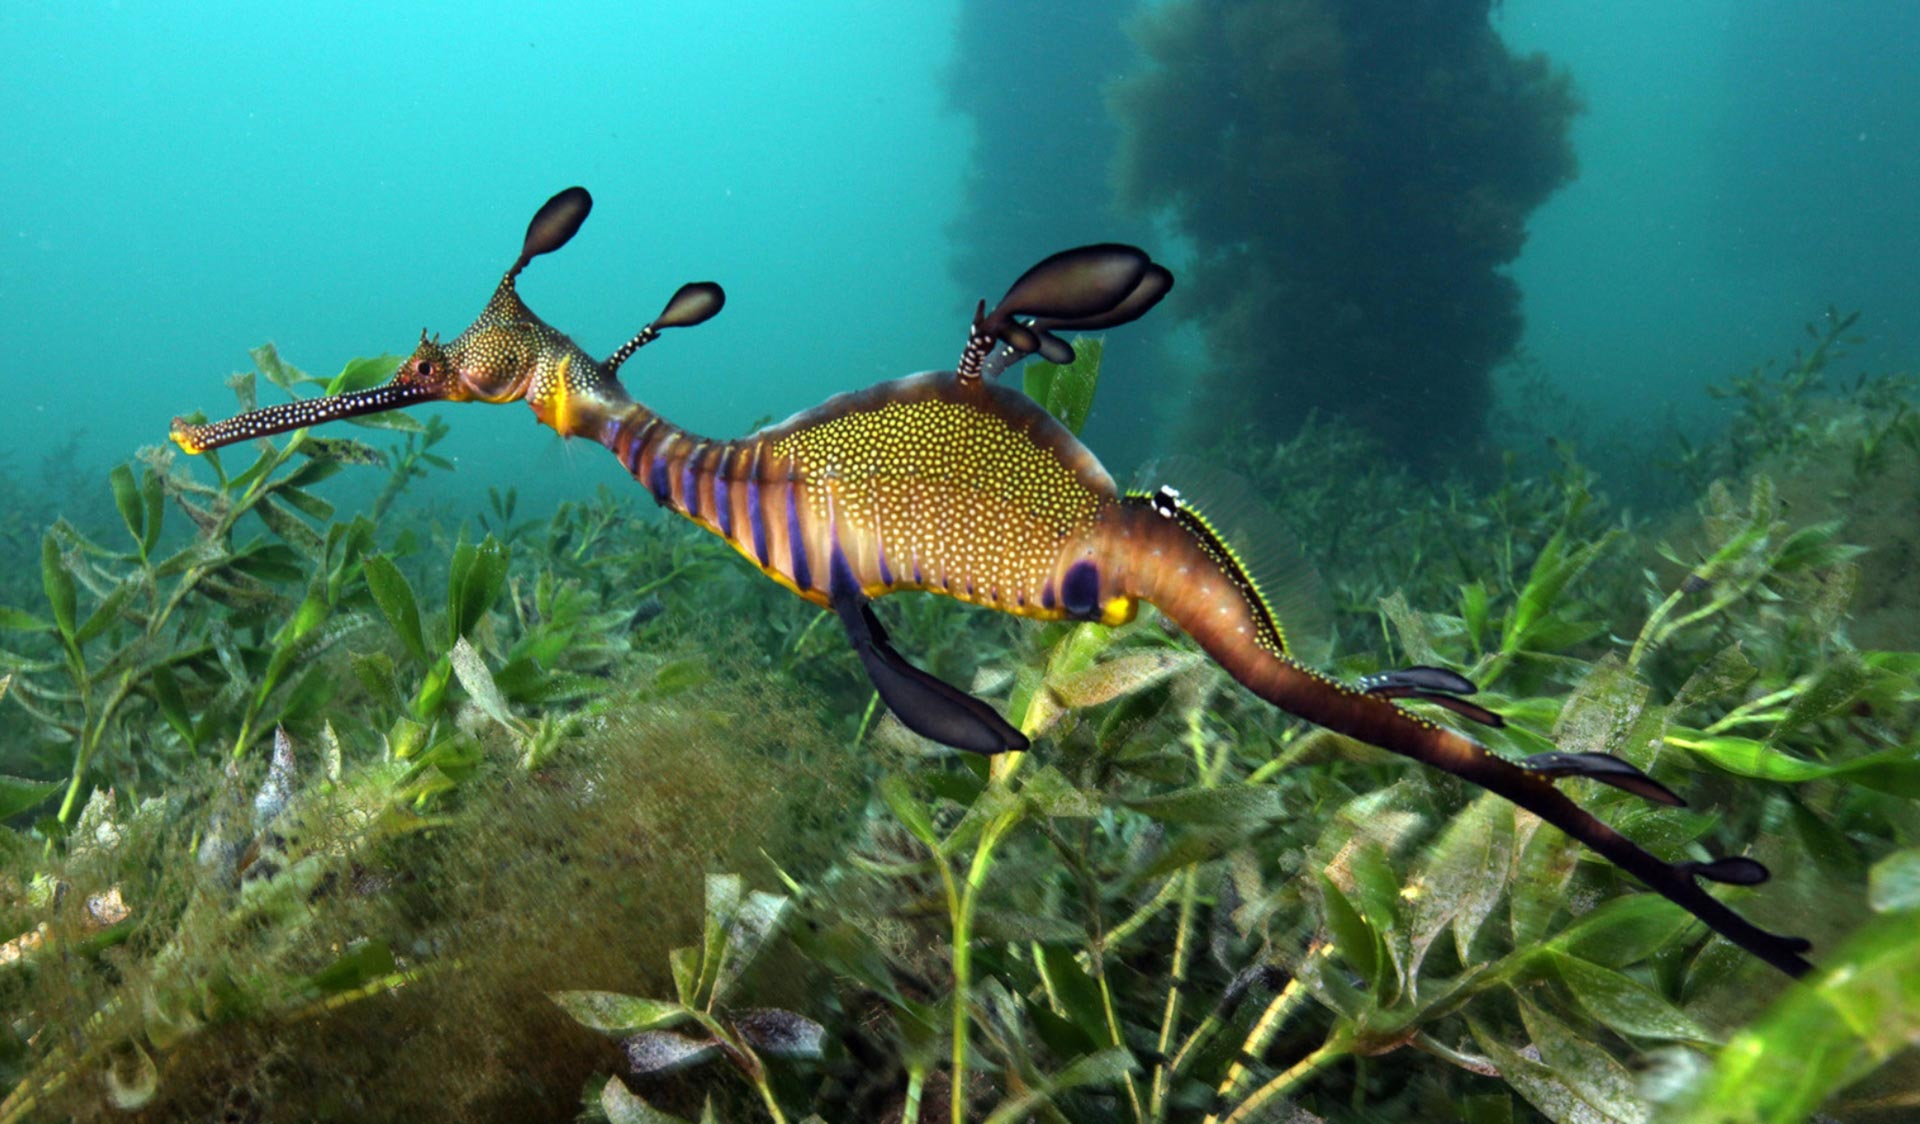 A Weedy Seadragon swims above the seaweed-covered seabed in Western Port.